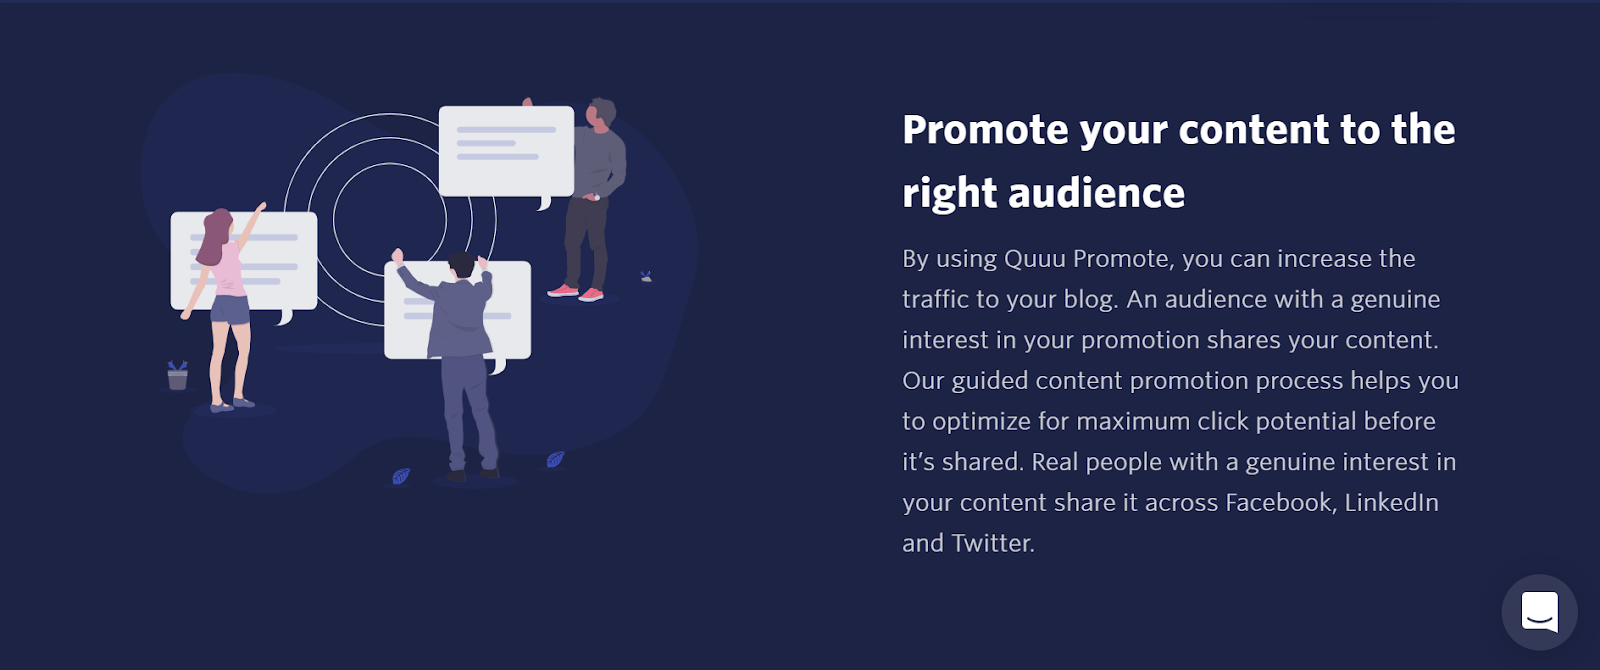 "An image taken from the Quuu Promote landing page, it shows three animated people holding large speech bubbles of content and pinning them to specific areas to reach the right people. The heading to the right of the illustration reads: ""Promote your content to the right audience"""